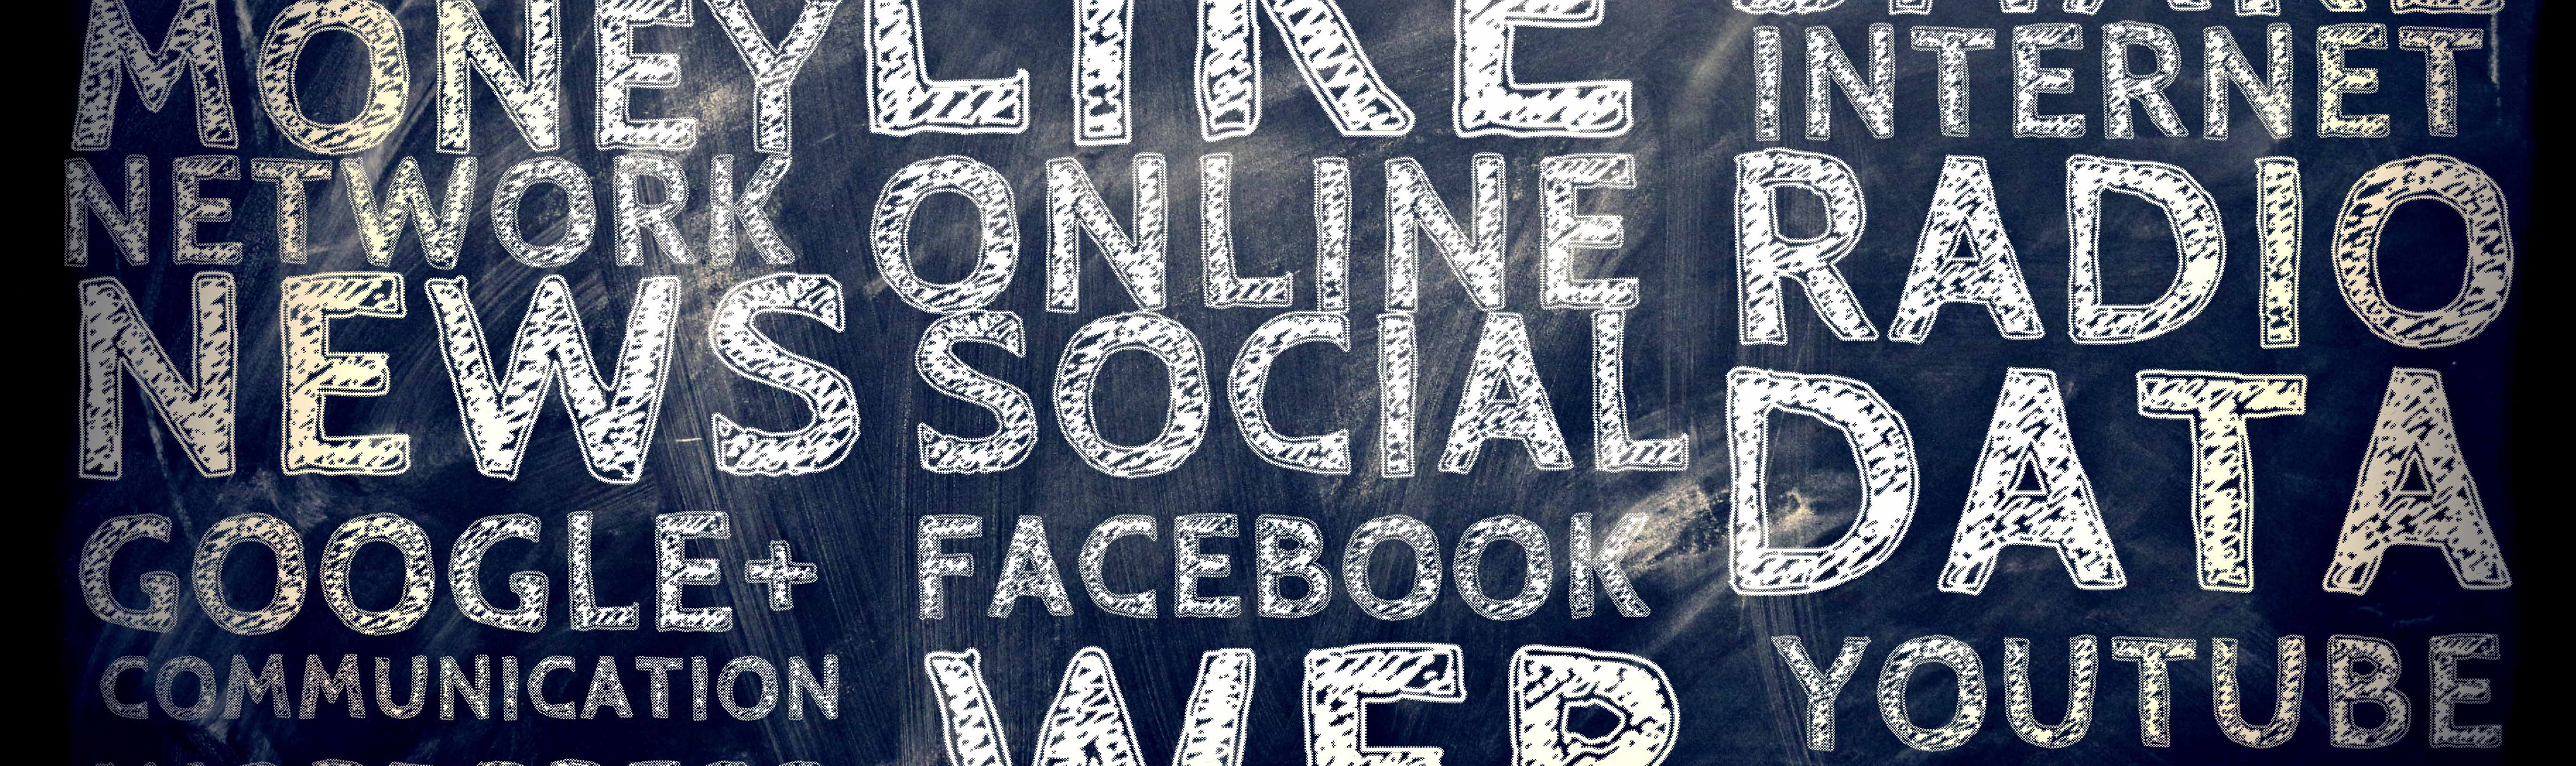 Social Media: Webmaster. Community Manager. e-Marketing.